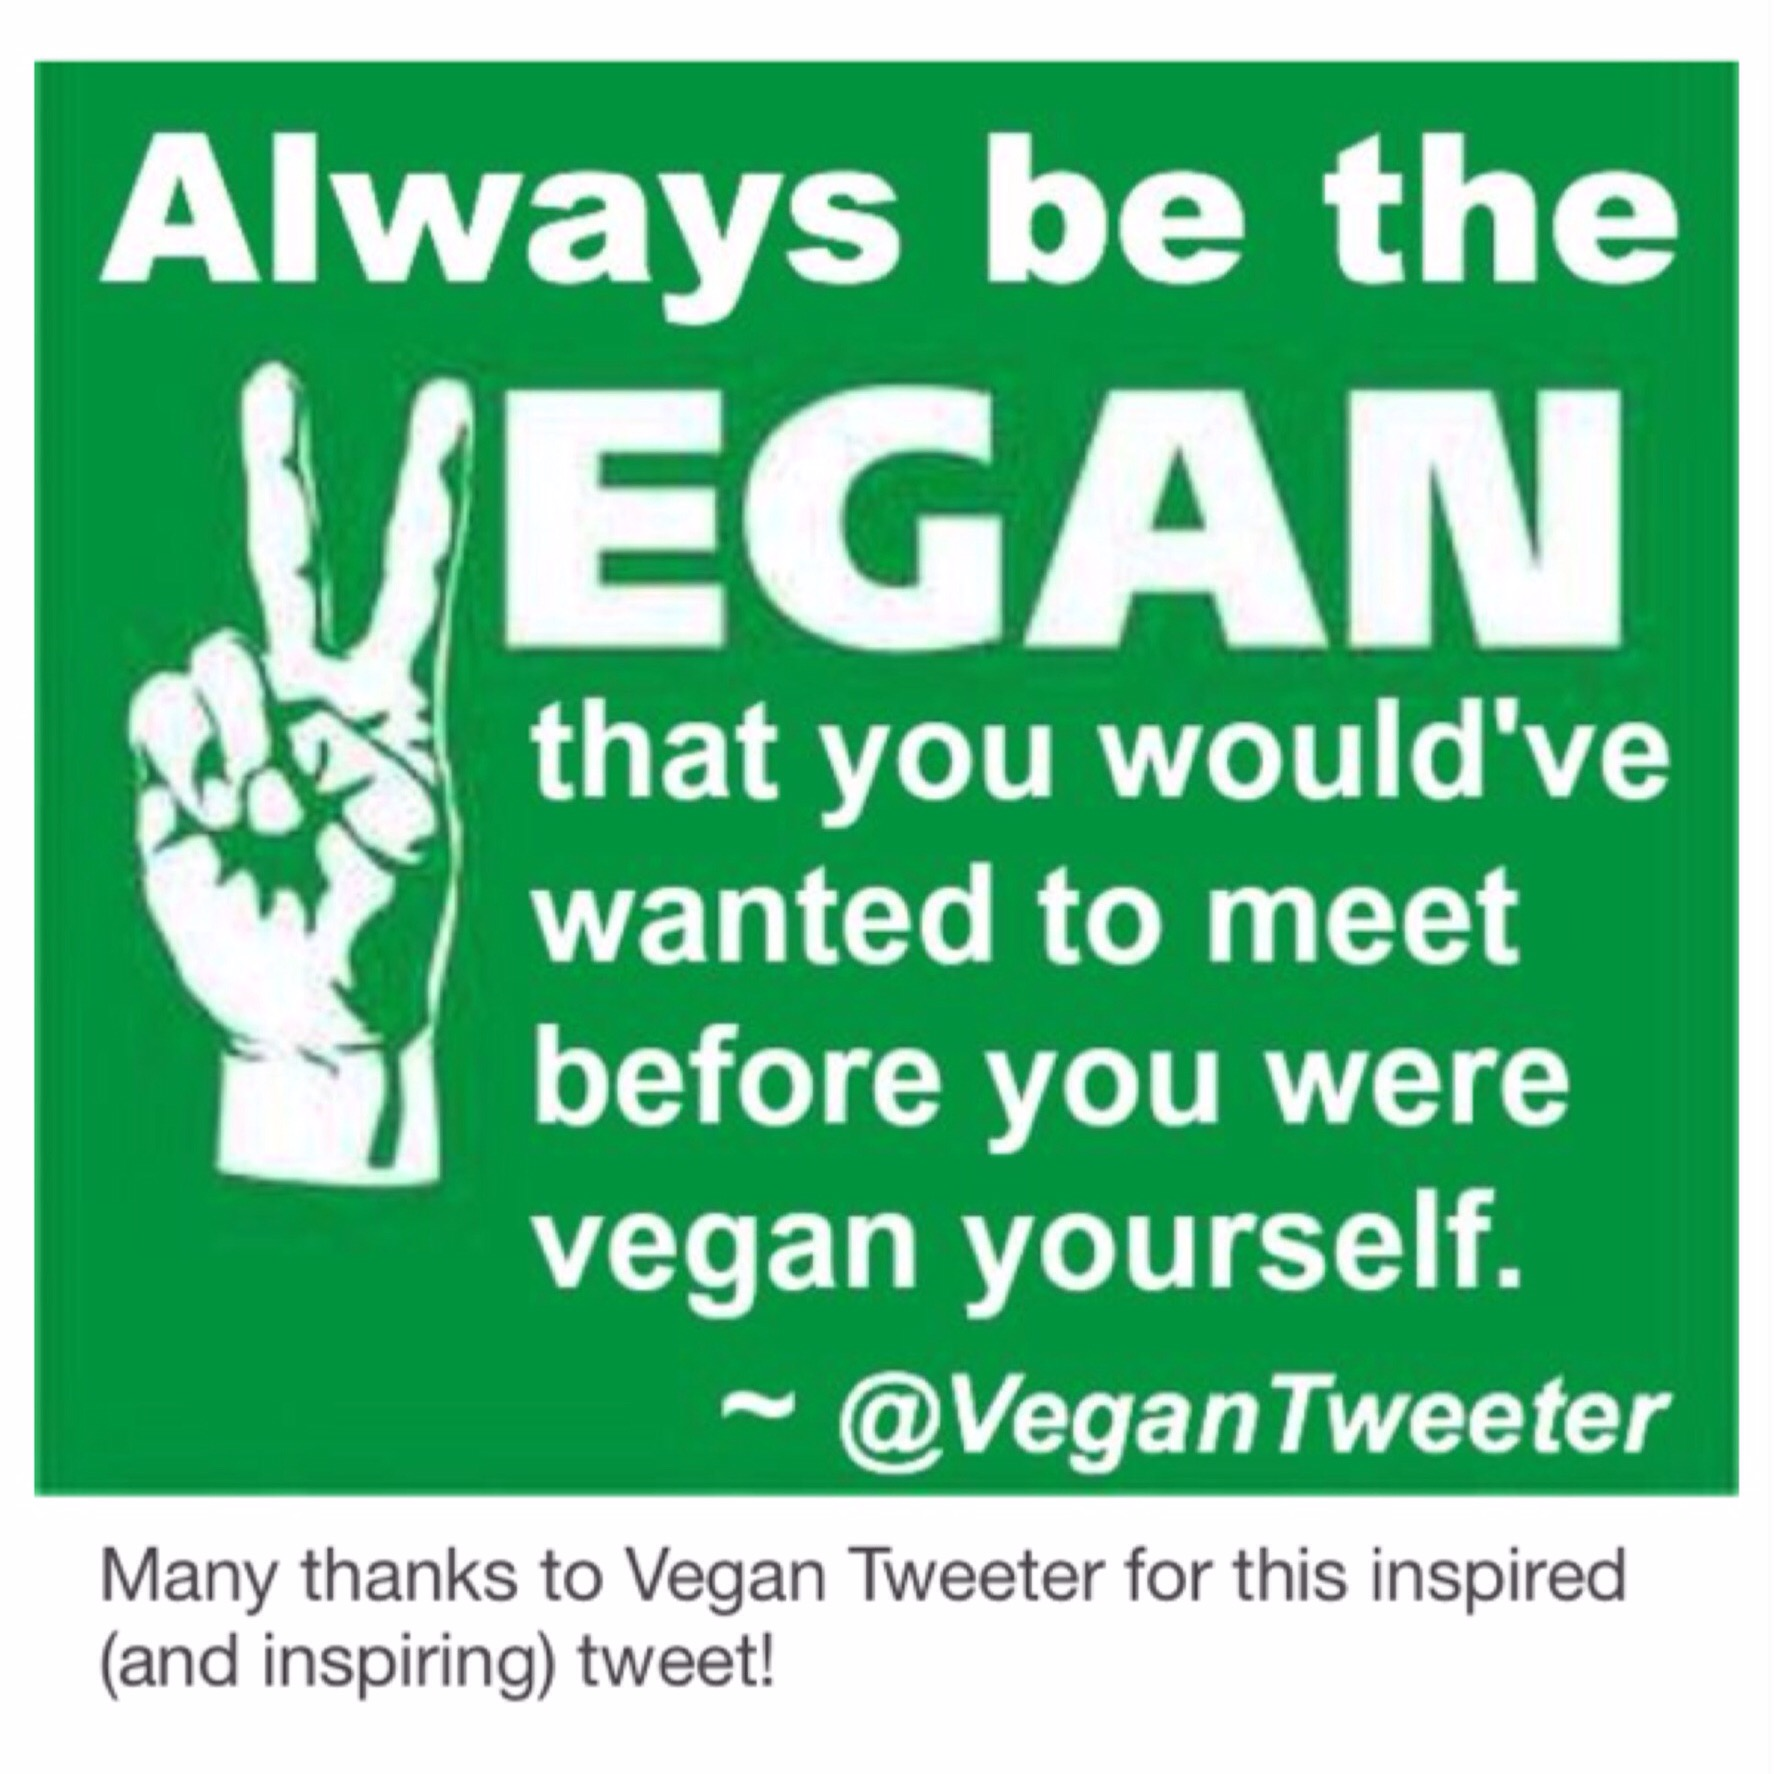 Vegan Quotes 19 Vegan Quotes Quotations That Make You Think  Veginspired